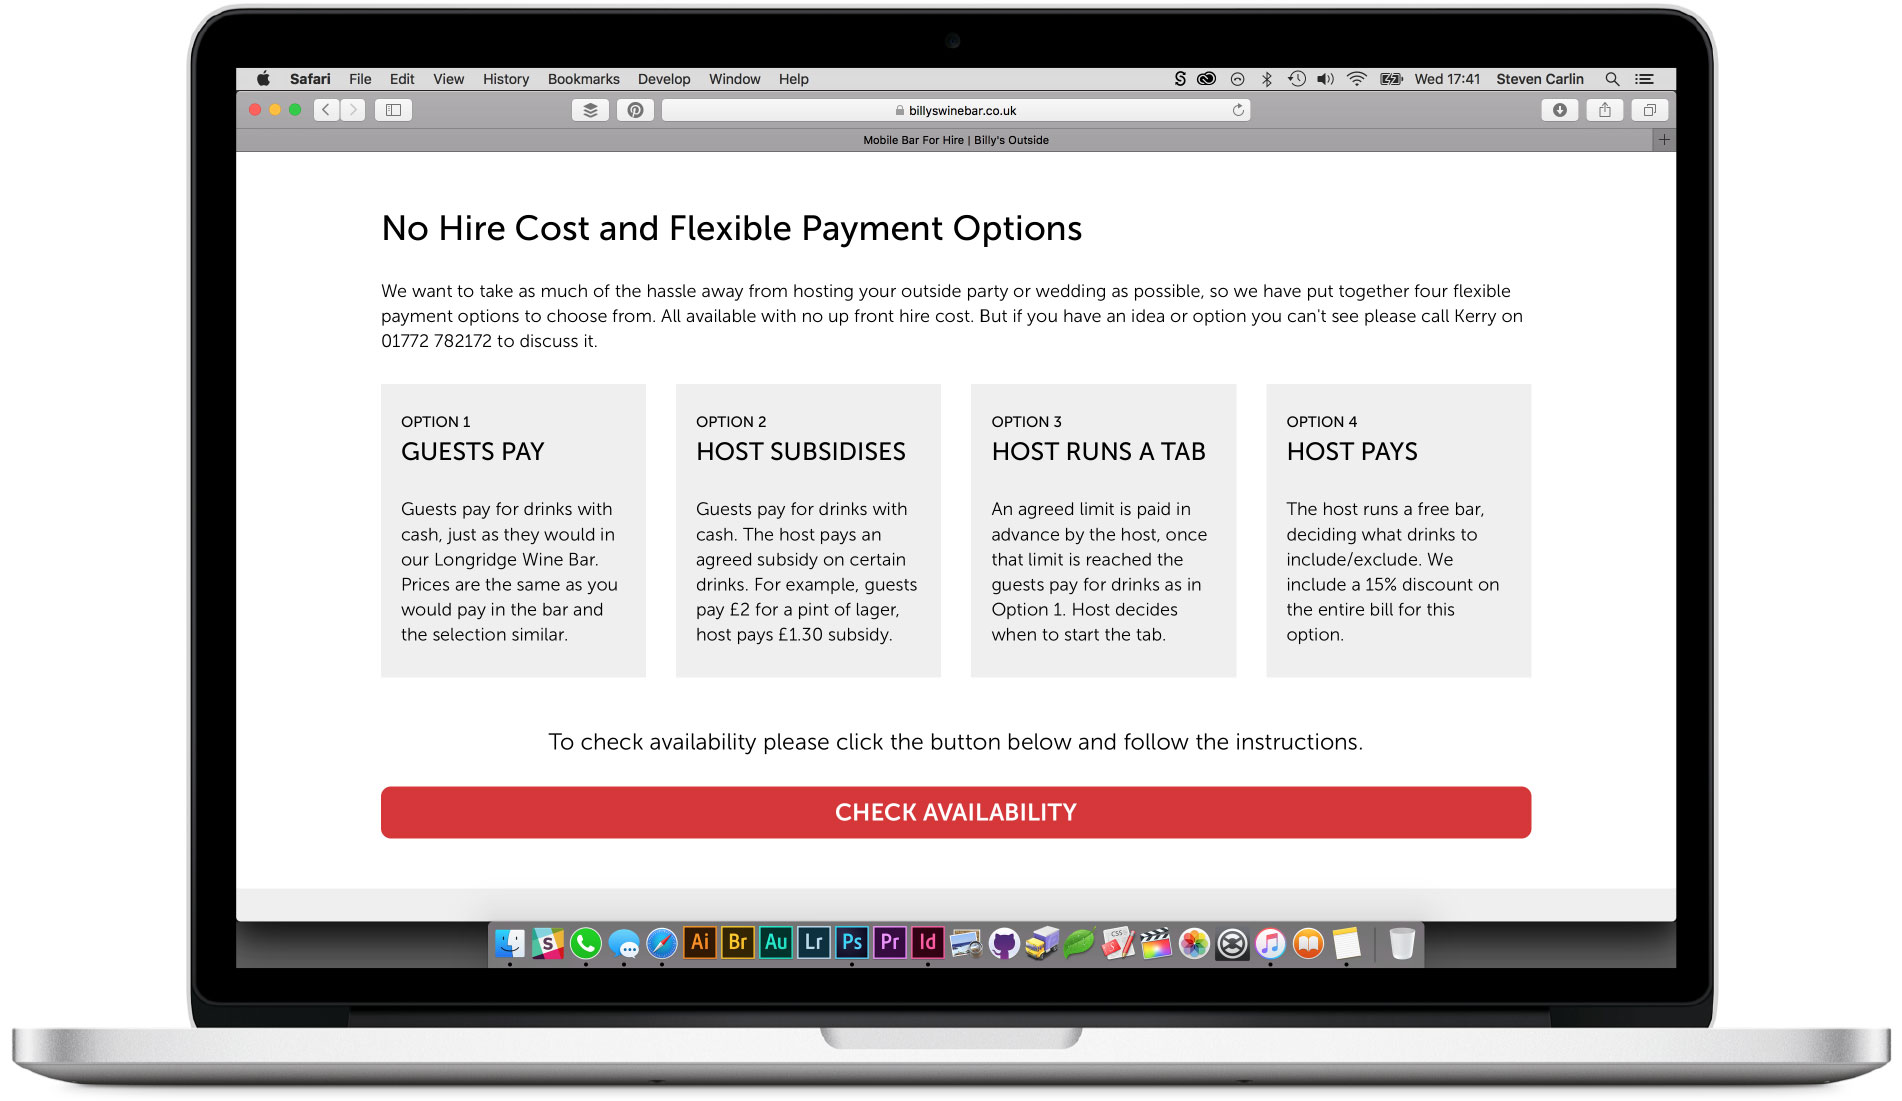 Pricing table section.